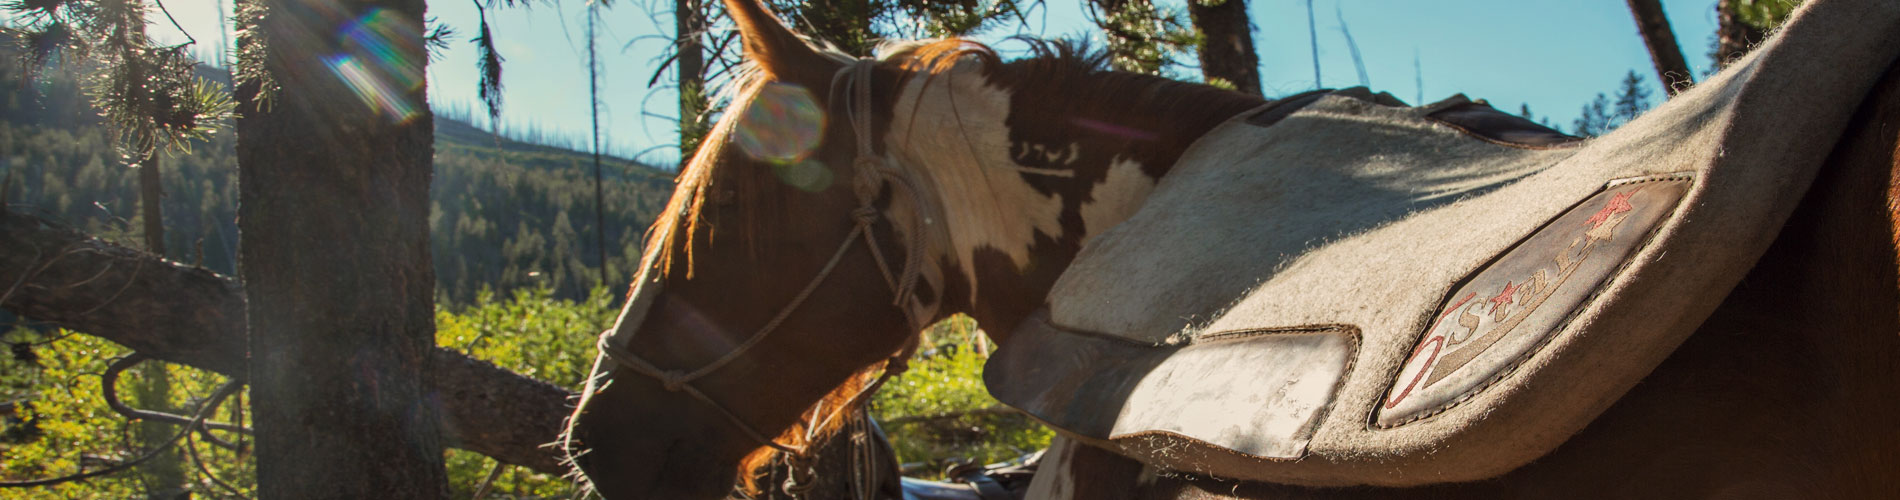 Saddle Pads & What Manufacturers Don't Tell You | 5 Star